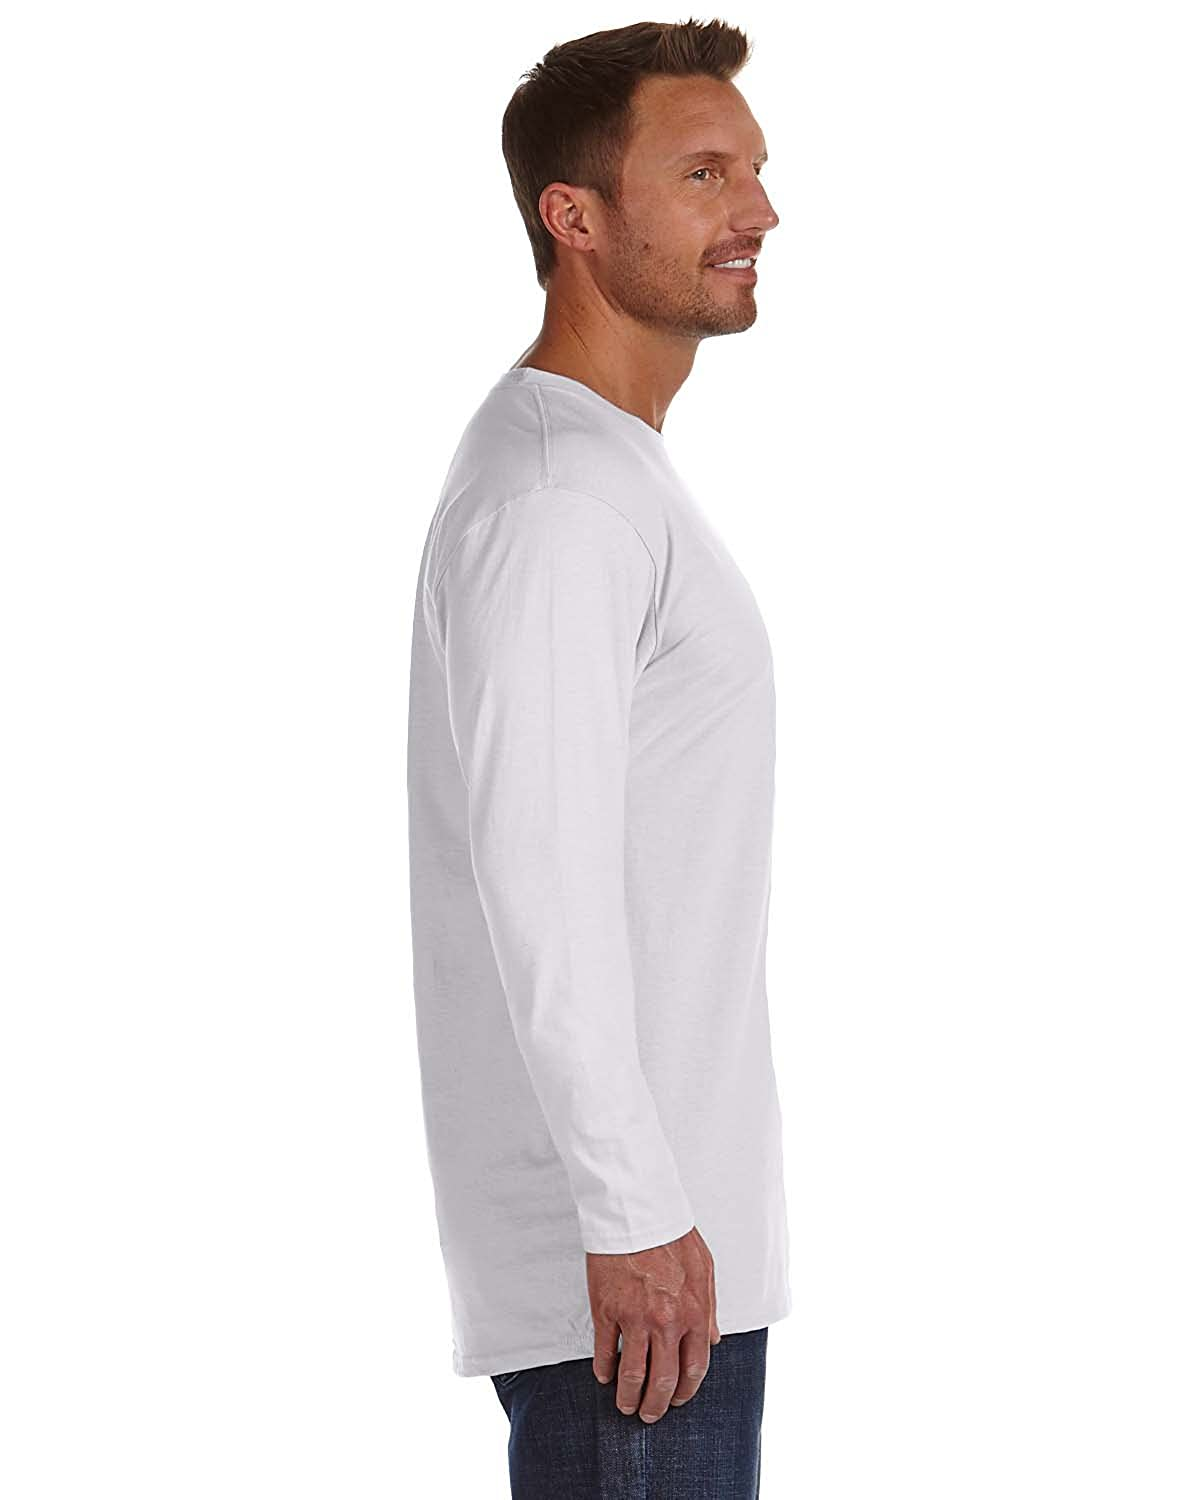 Hanes Tagless Nano-T Mens Long-Sleeve Tee